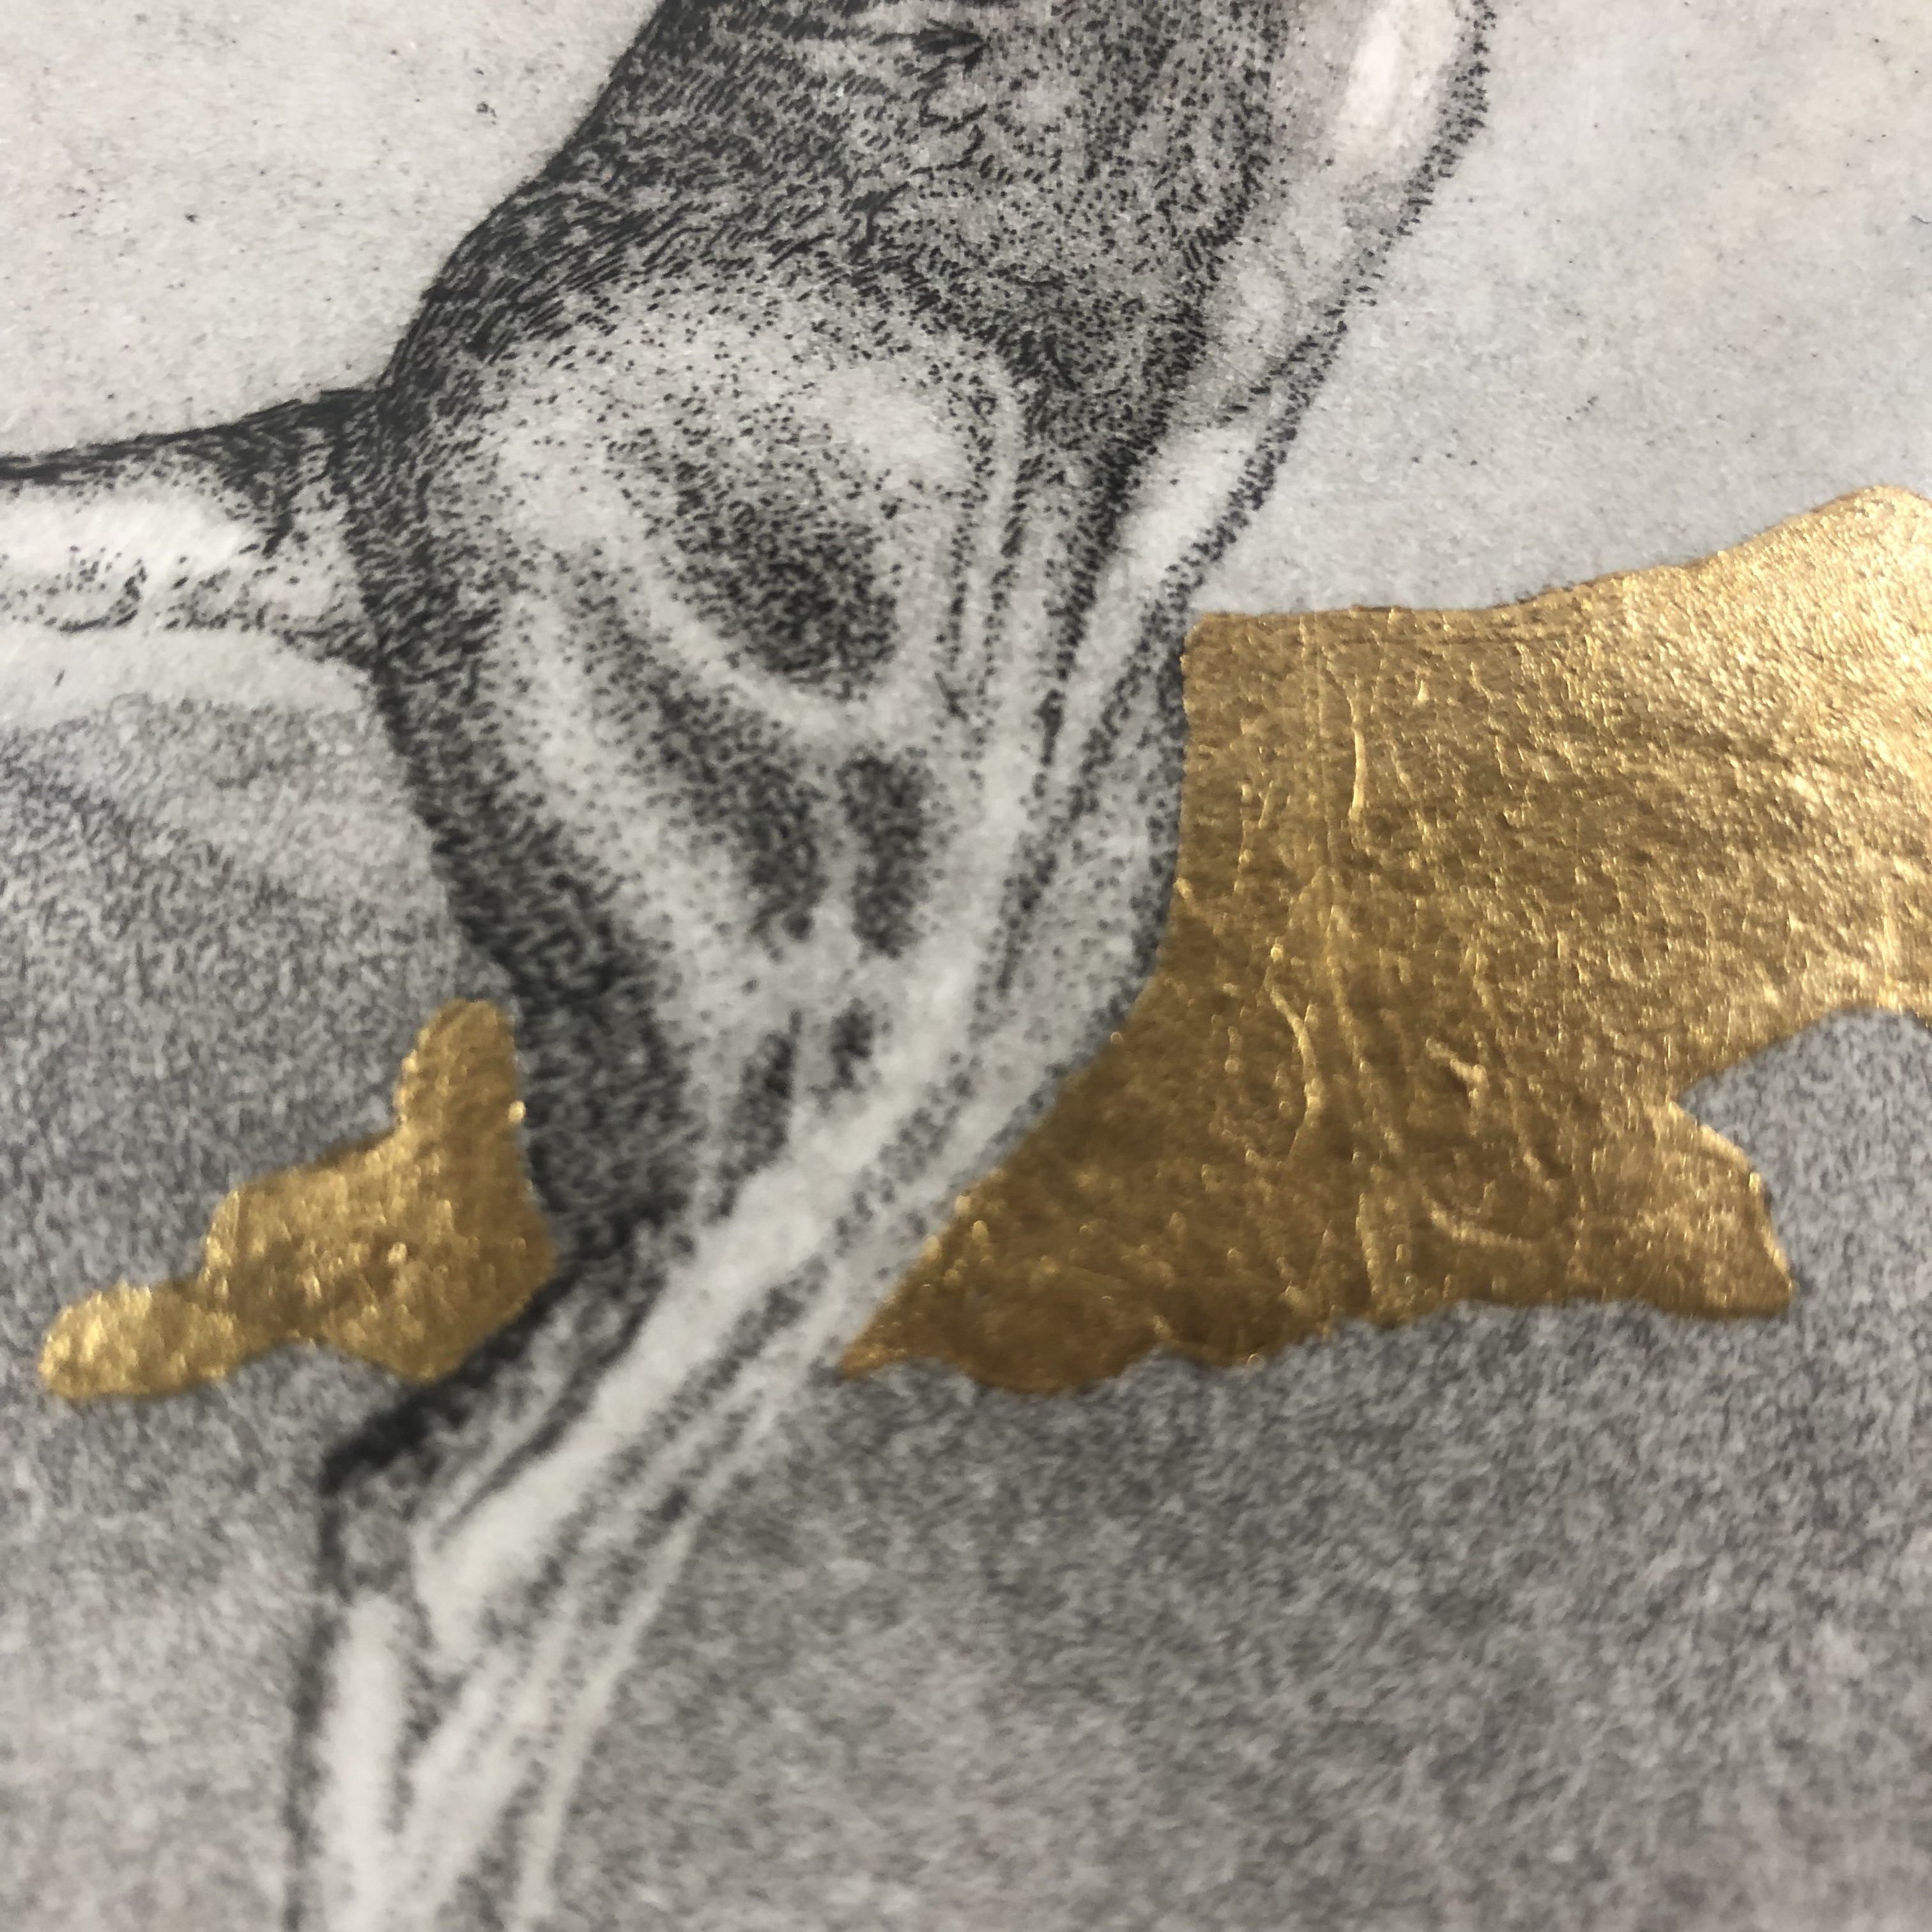 Limited edition etching, aquatint and gold leaf on 300gsm Somerset paper. Edition of 75.